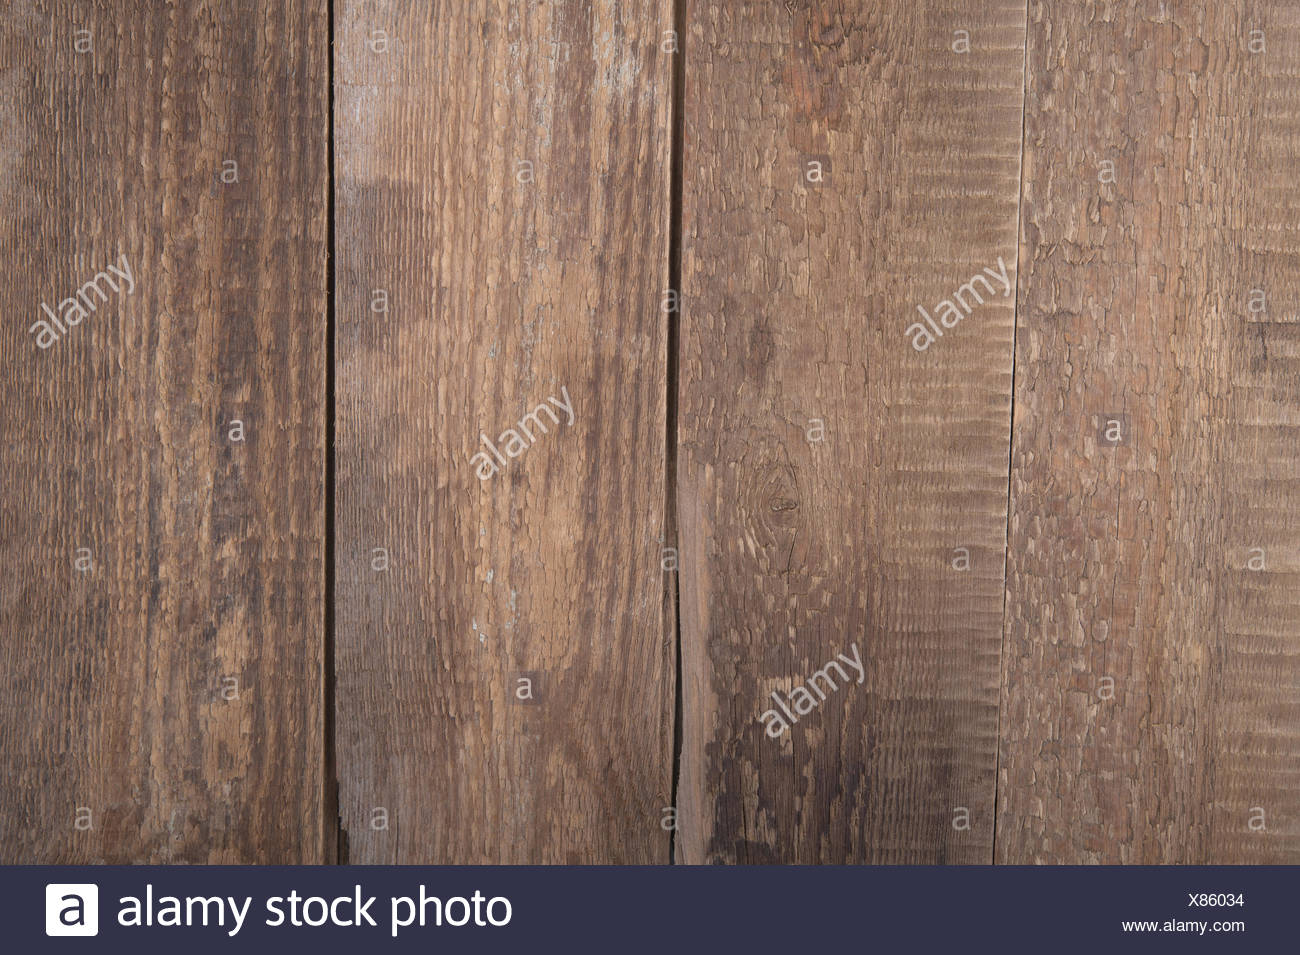 Background of old wooden planks. - Stock Image